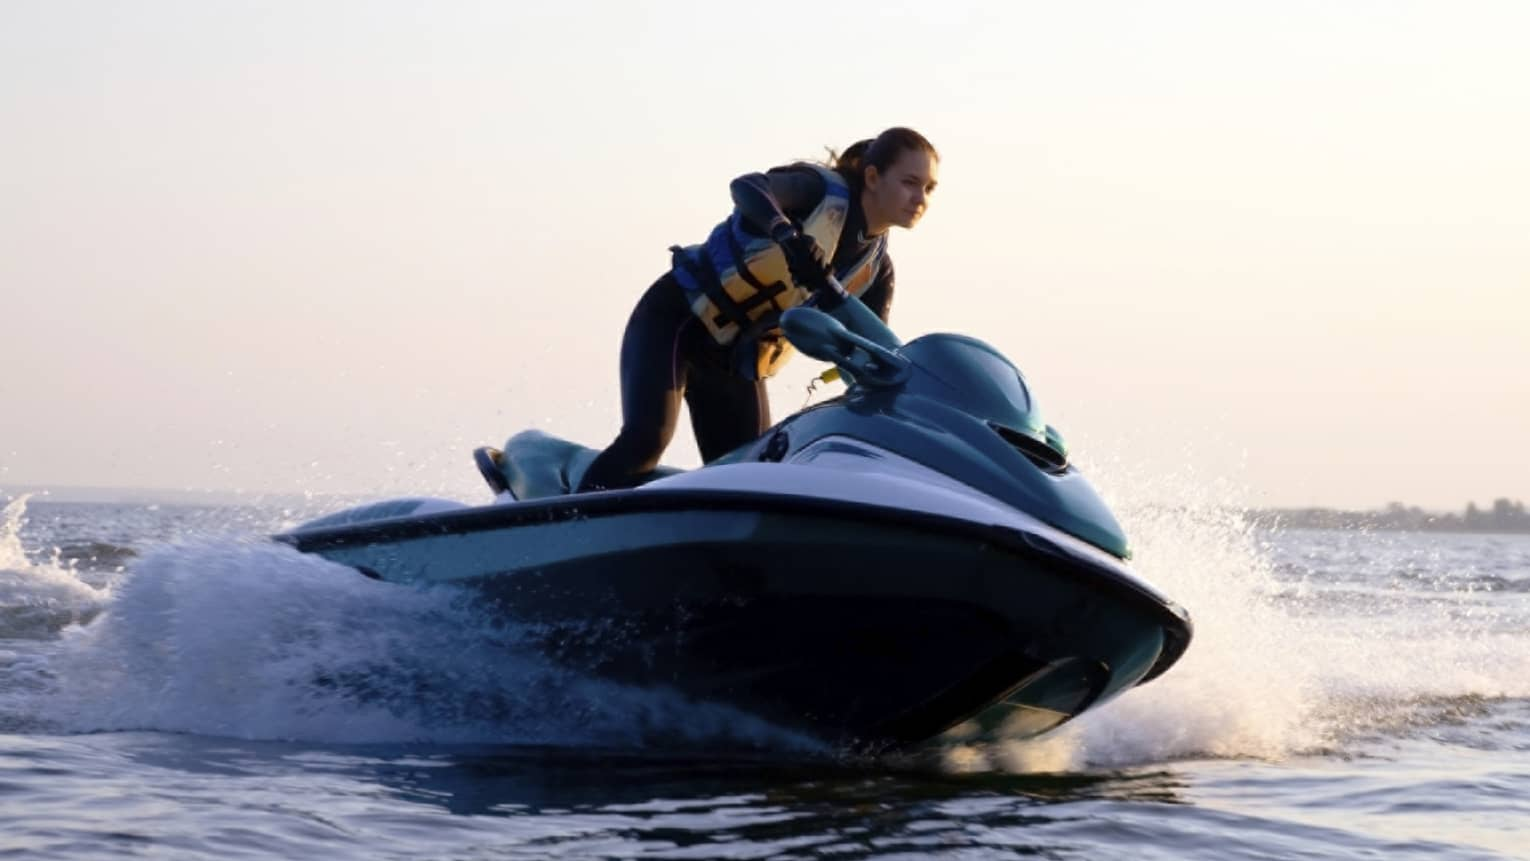 Woman wearing life jacket stands, steers jet ski on ocean at sunset